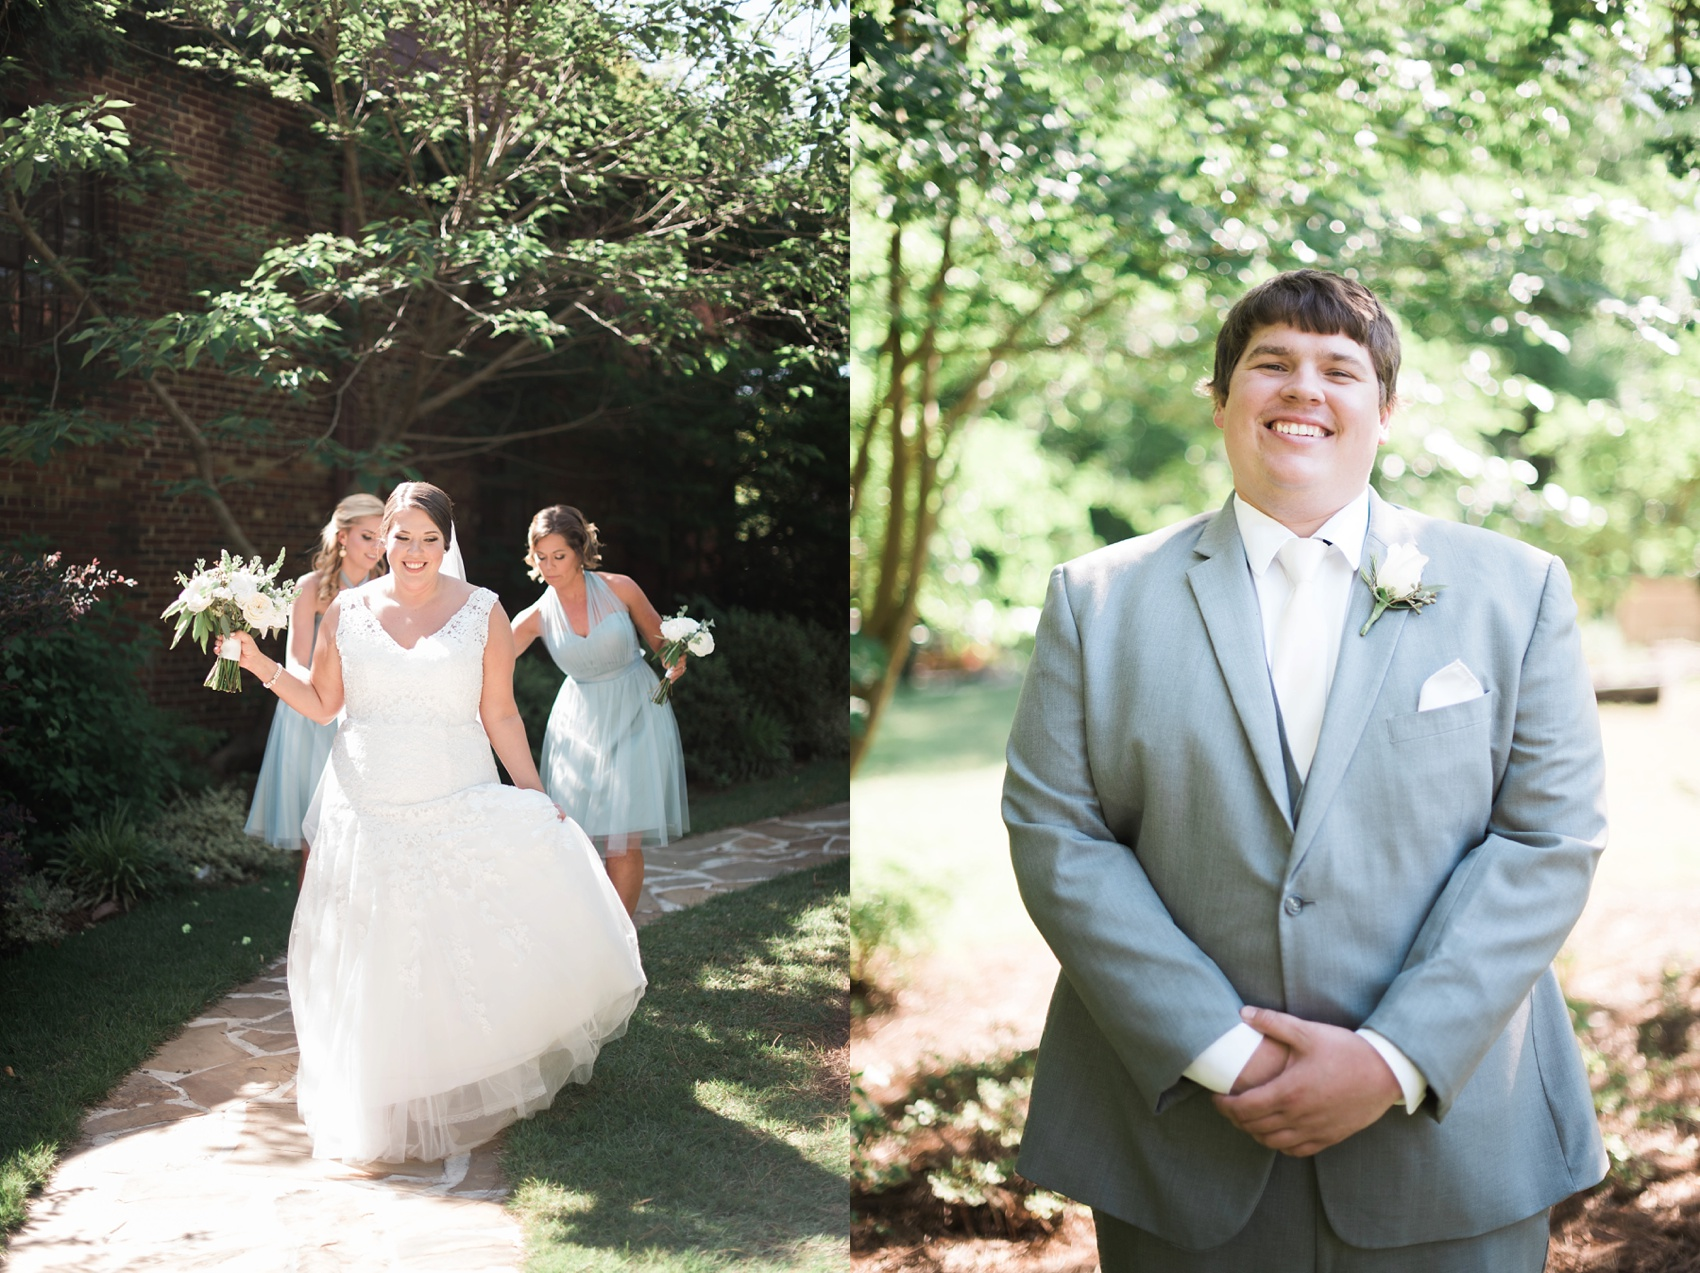 columbia_wedding_photographer_0268.jpg